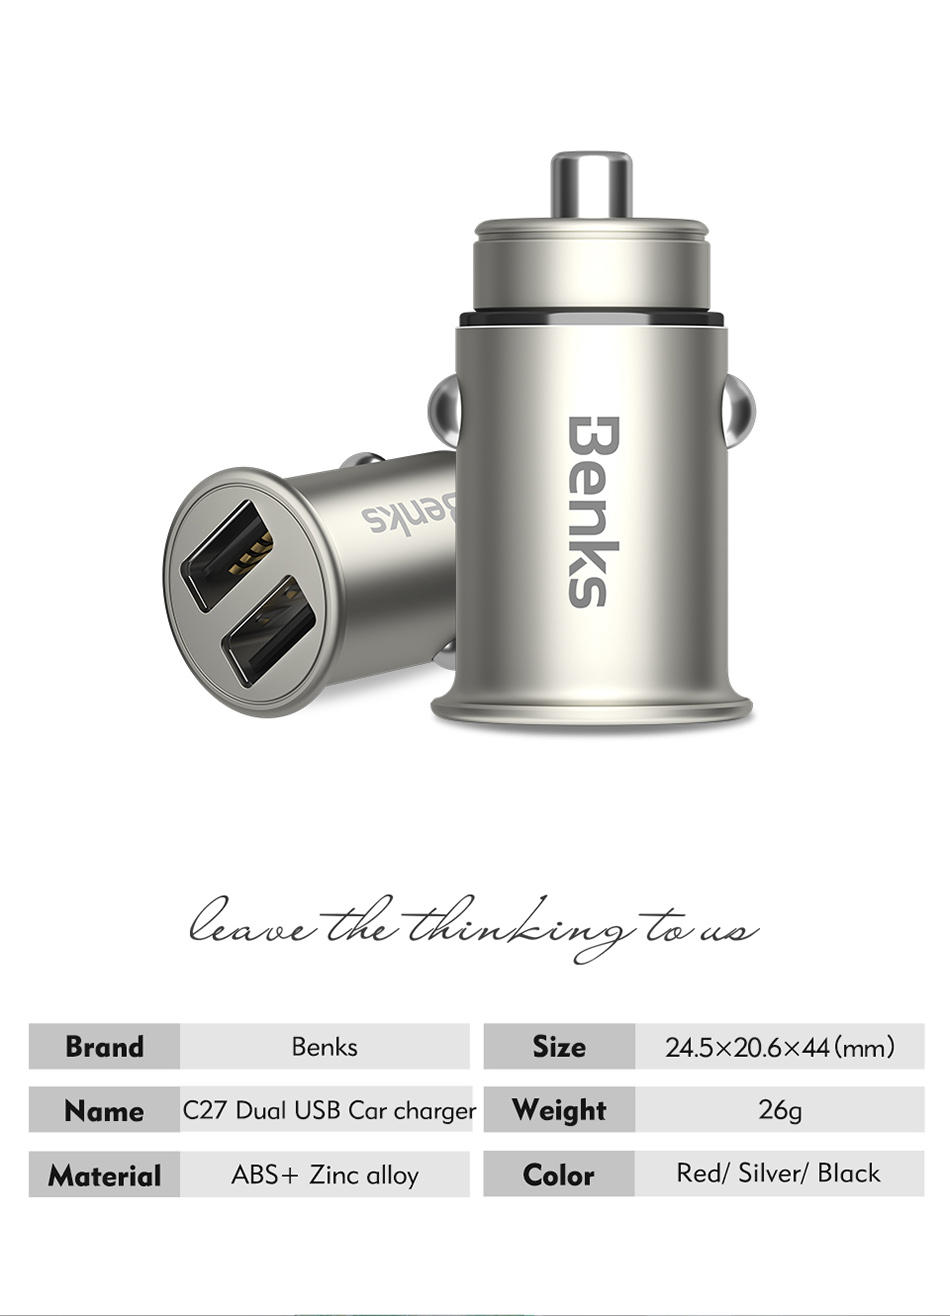 Benks Dual USB Port Quick Car Charger Lighting For iPhone X 10 8 7 Huawei Samsung Galaxy S7S6 Unviersal 4.8A Fast Auto Charger (10)